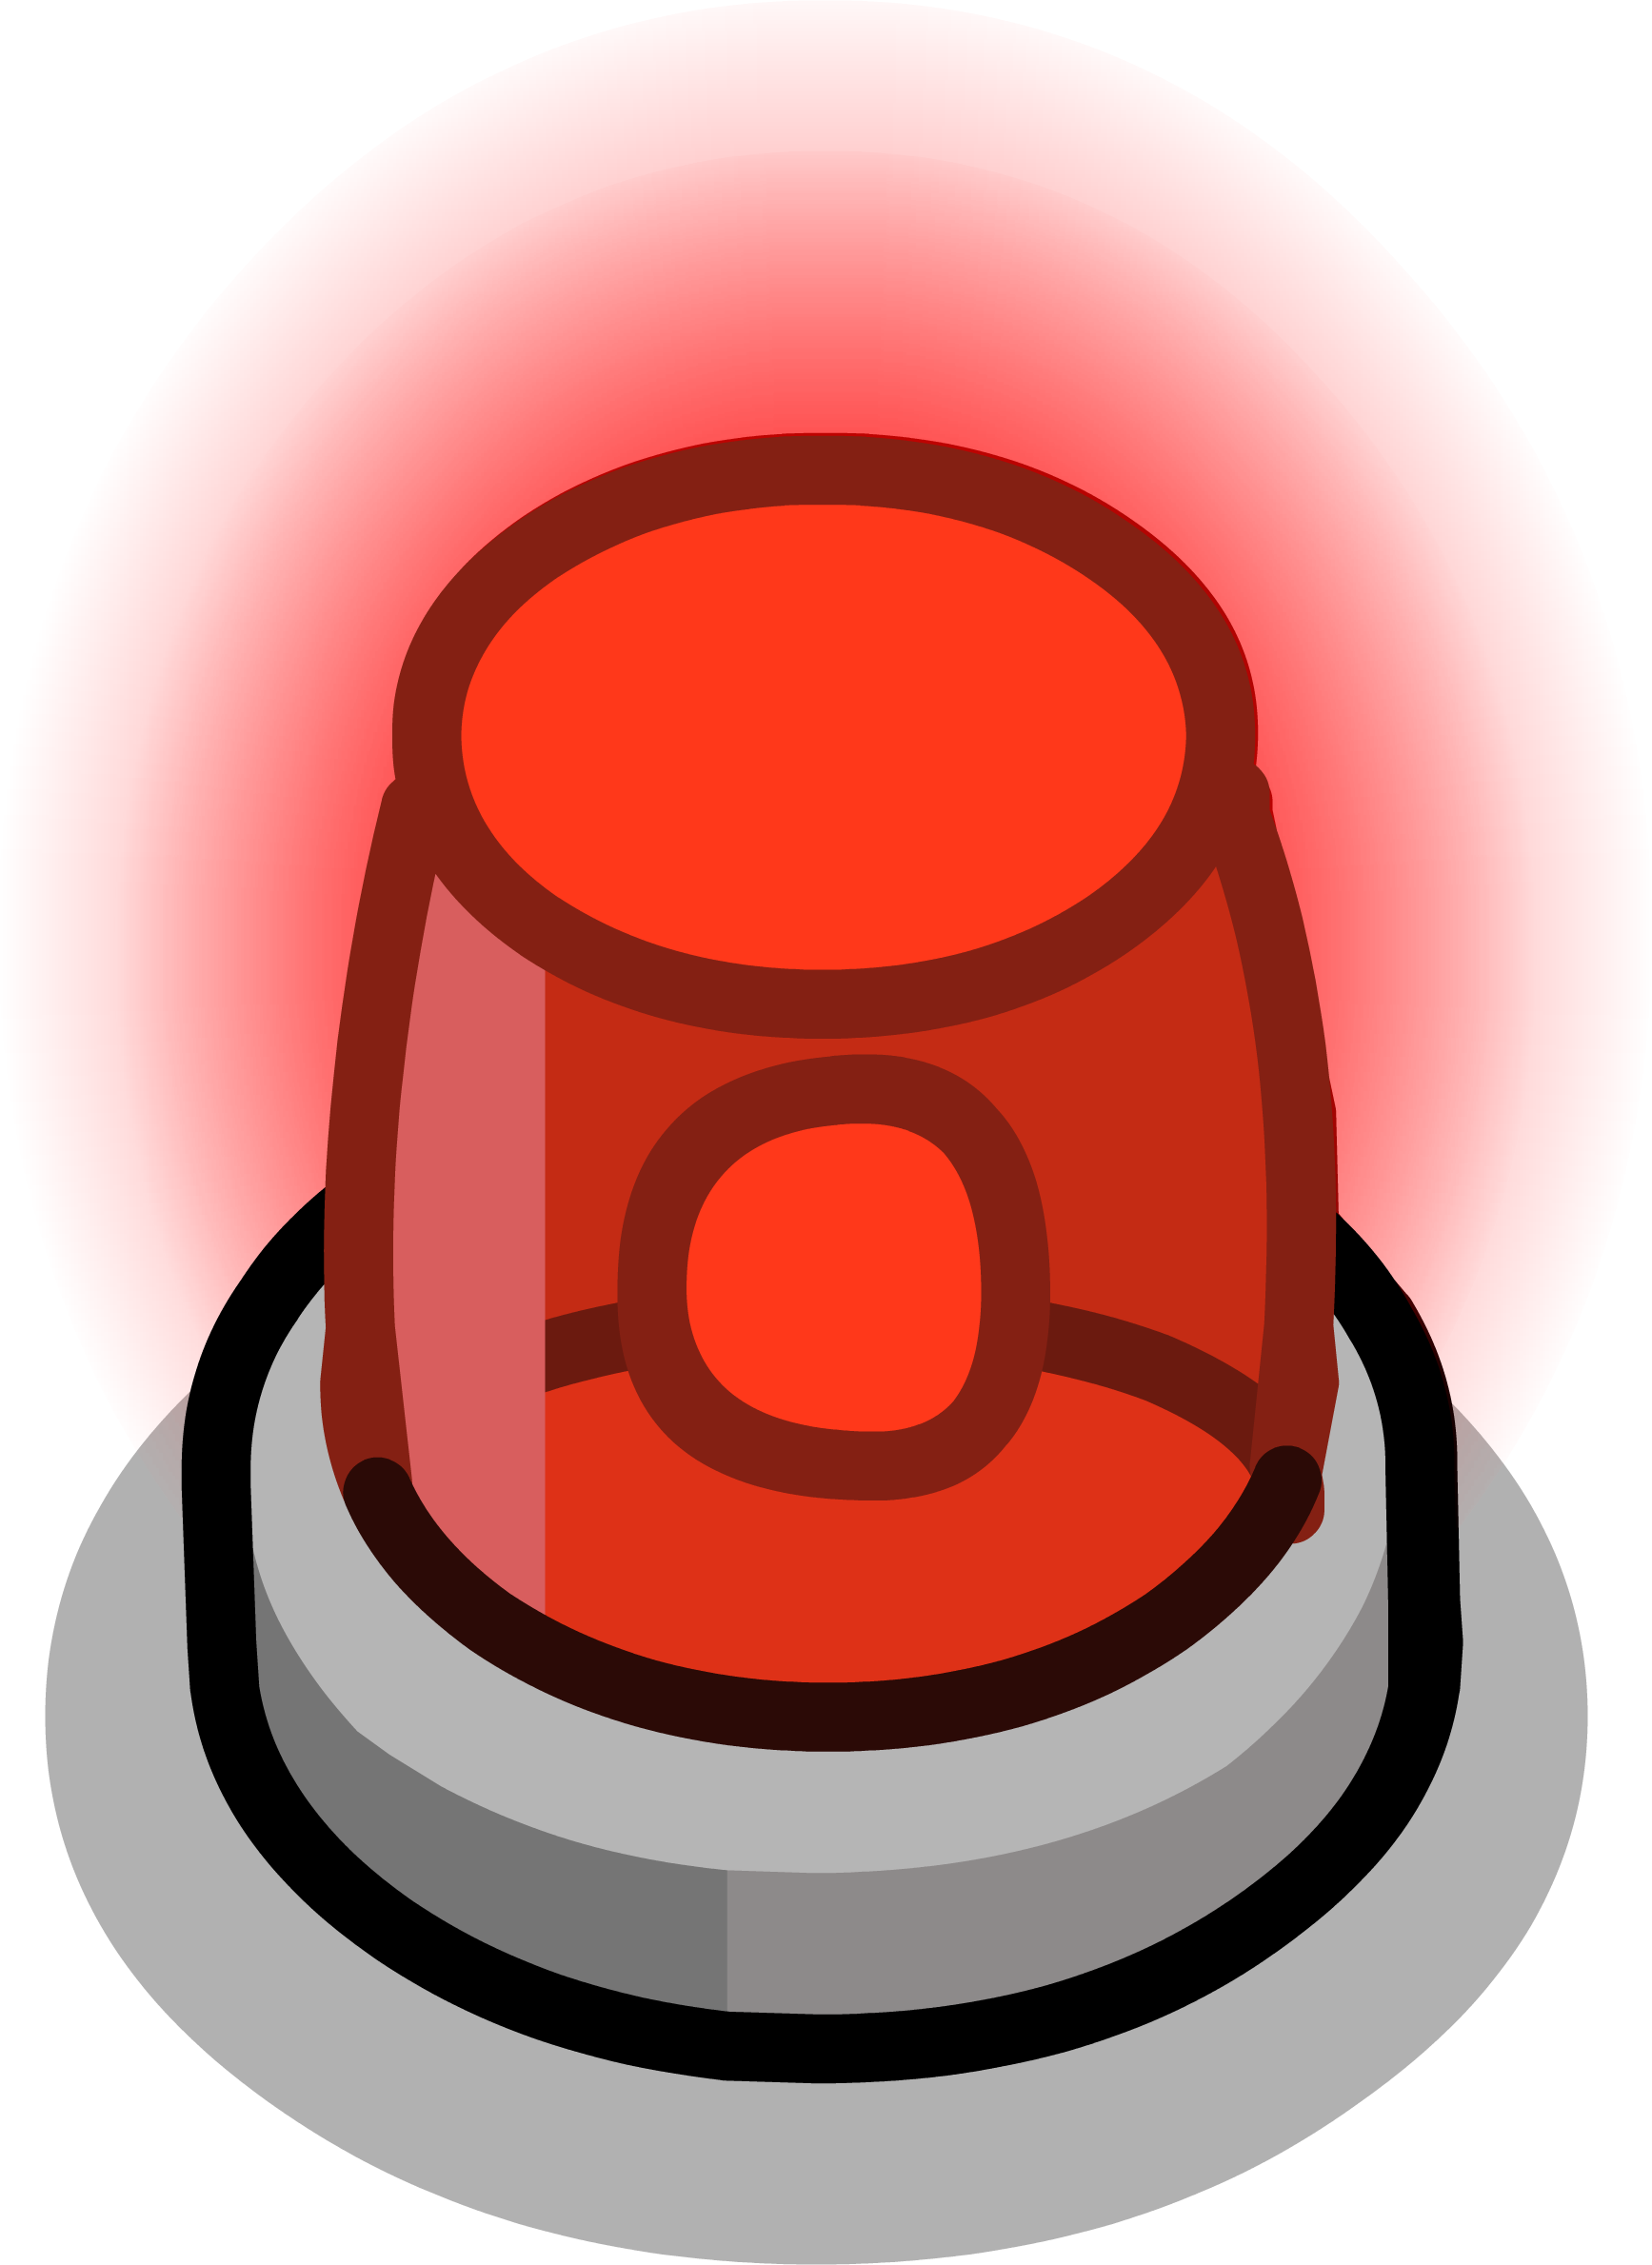 Emergency clipart emergency phone. Image light sprite png